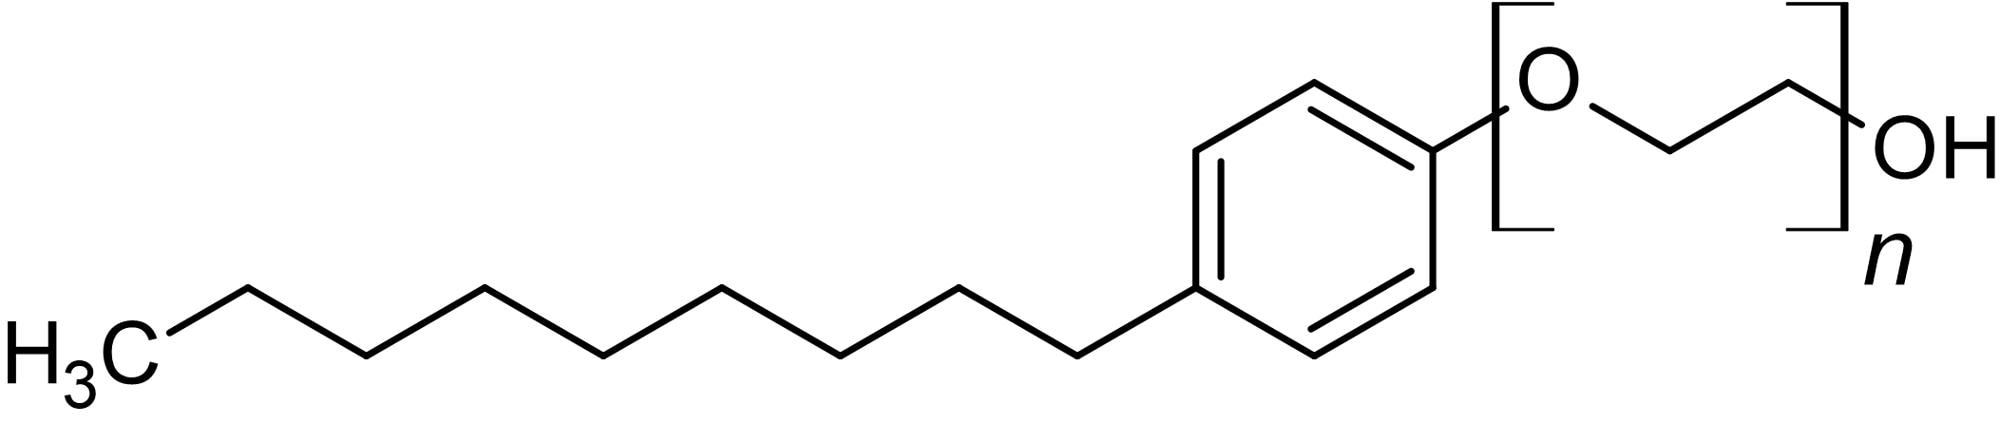 Chemical Structure - 10% NP-40, Detergent. 10% solution in water (ab142227)